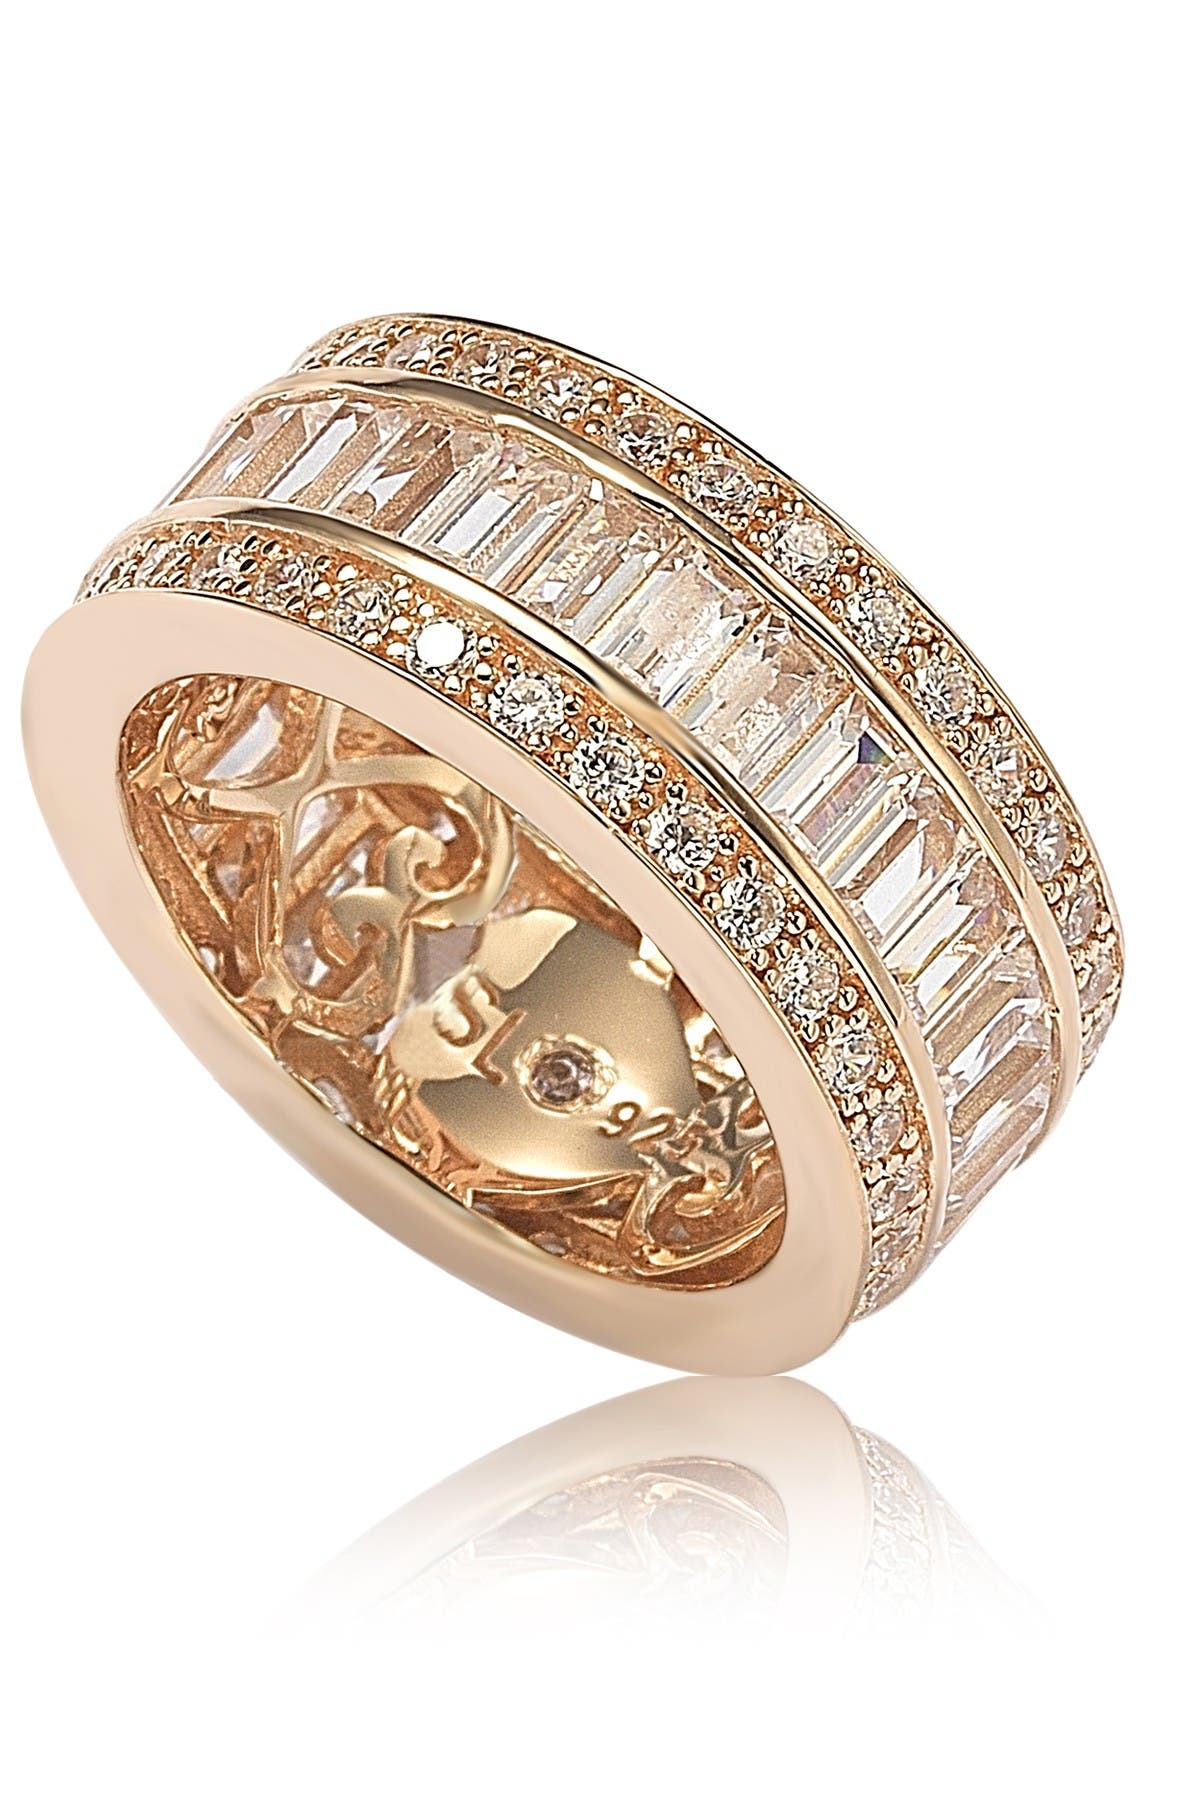 Image of Suzy Levian 14K Rose Gold Plated Sterling Silver Baguette-Cut & Round-Cut CZ Eternity Band